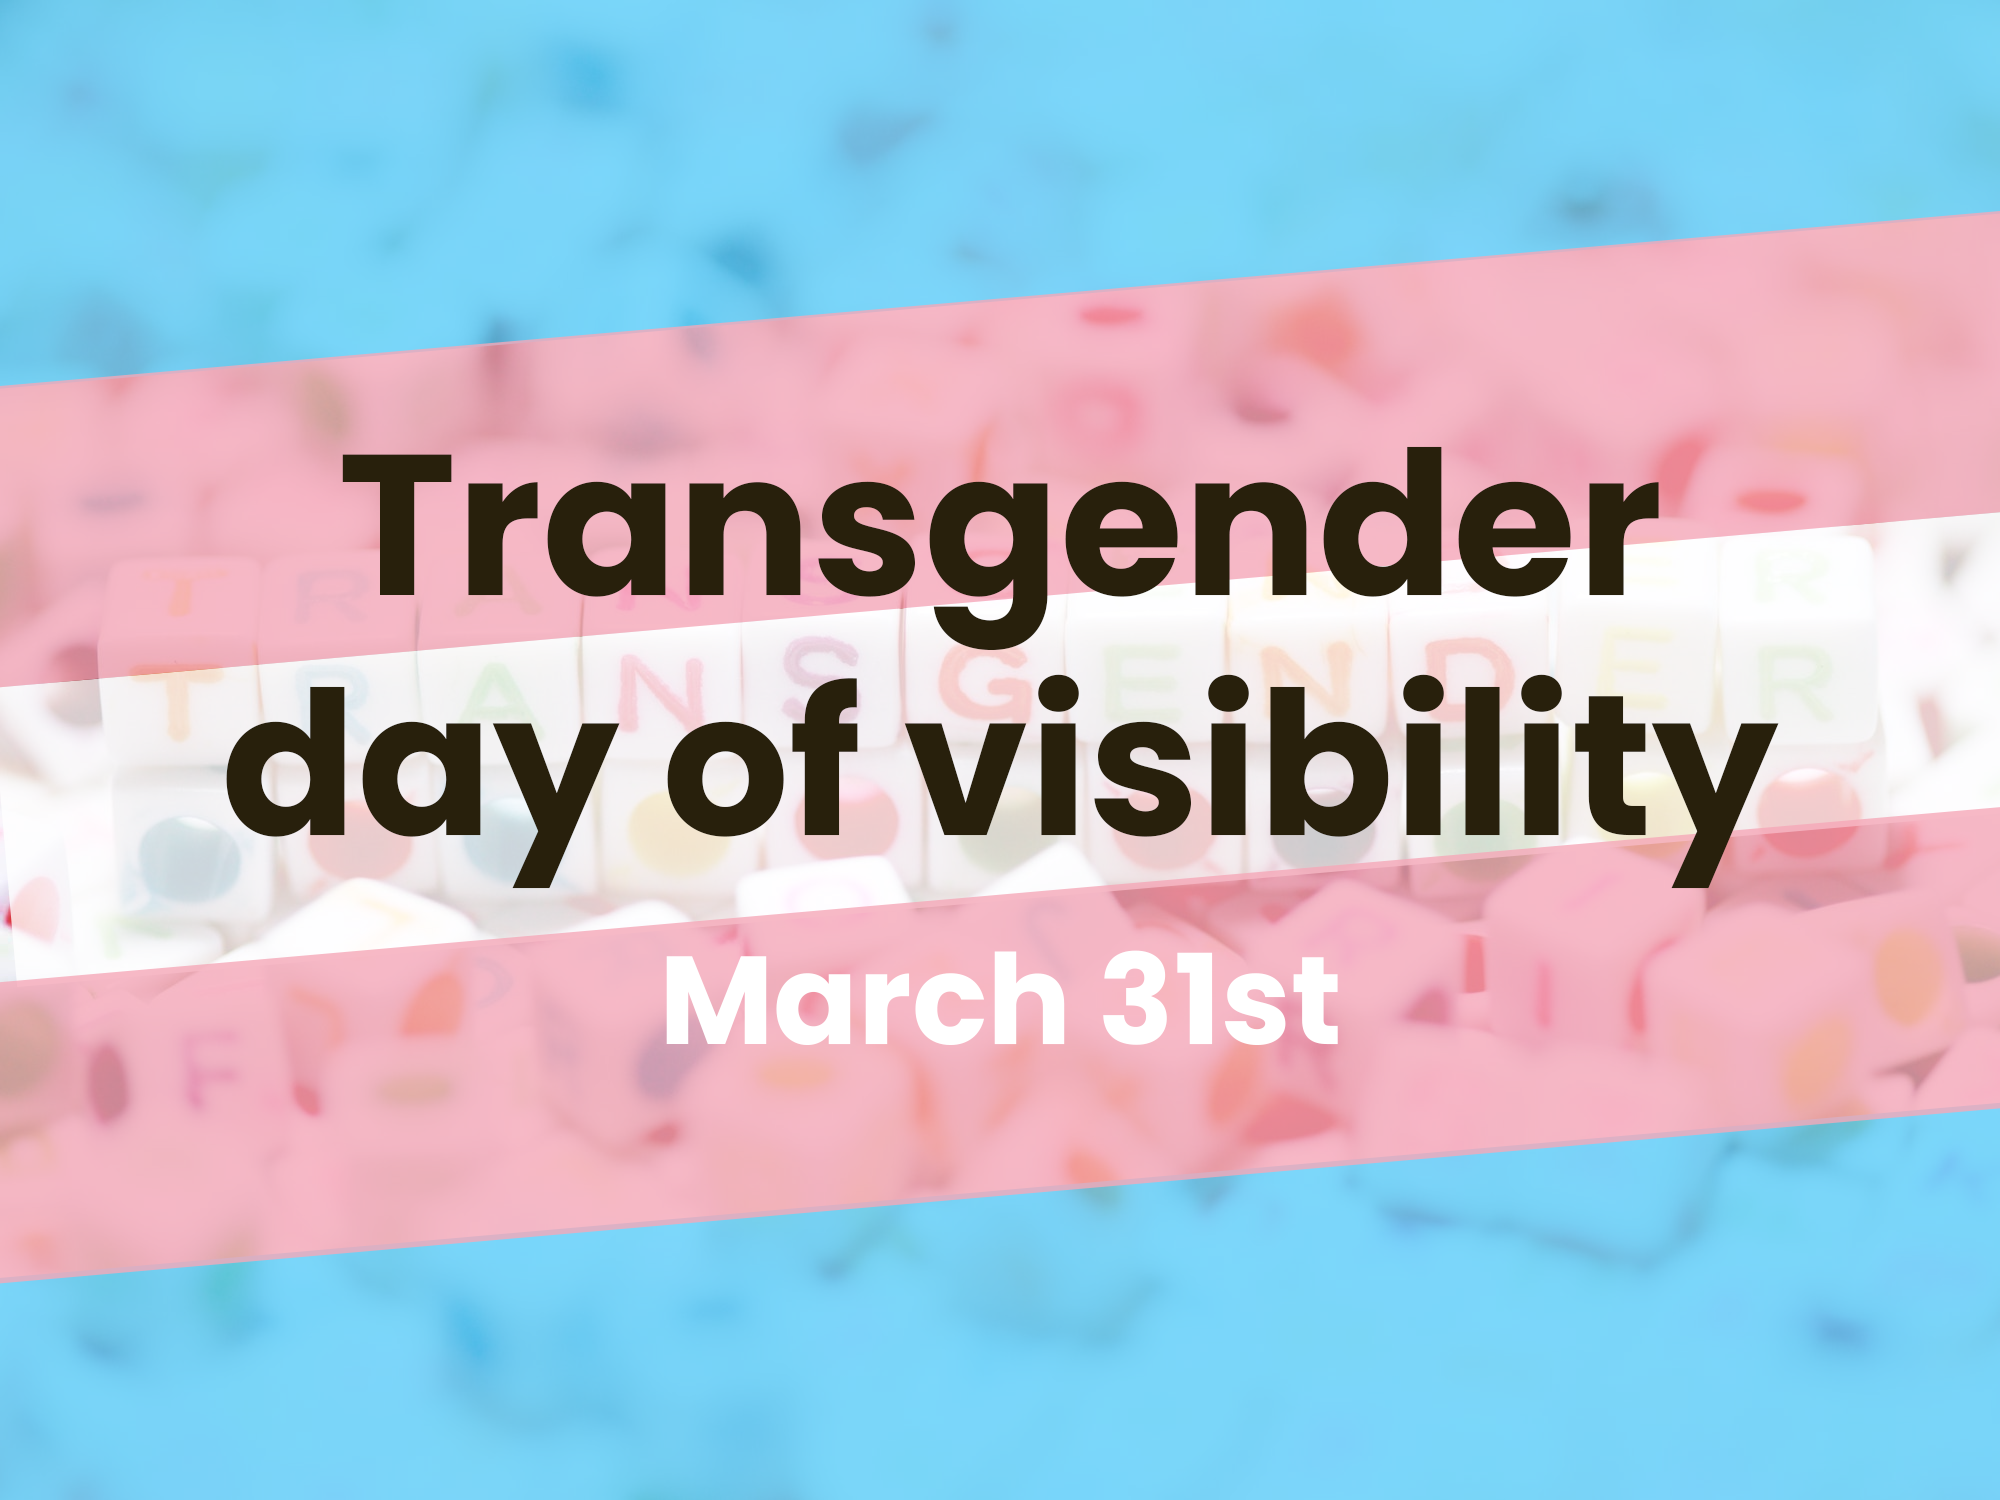 Montreal Careers | Why international day of trans visibility is important